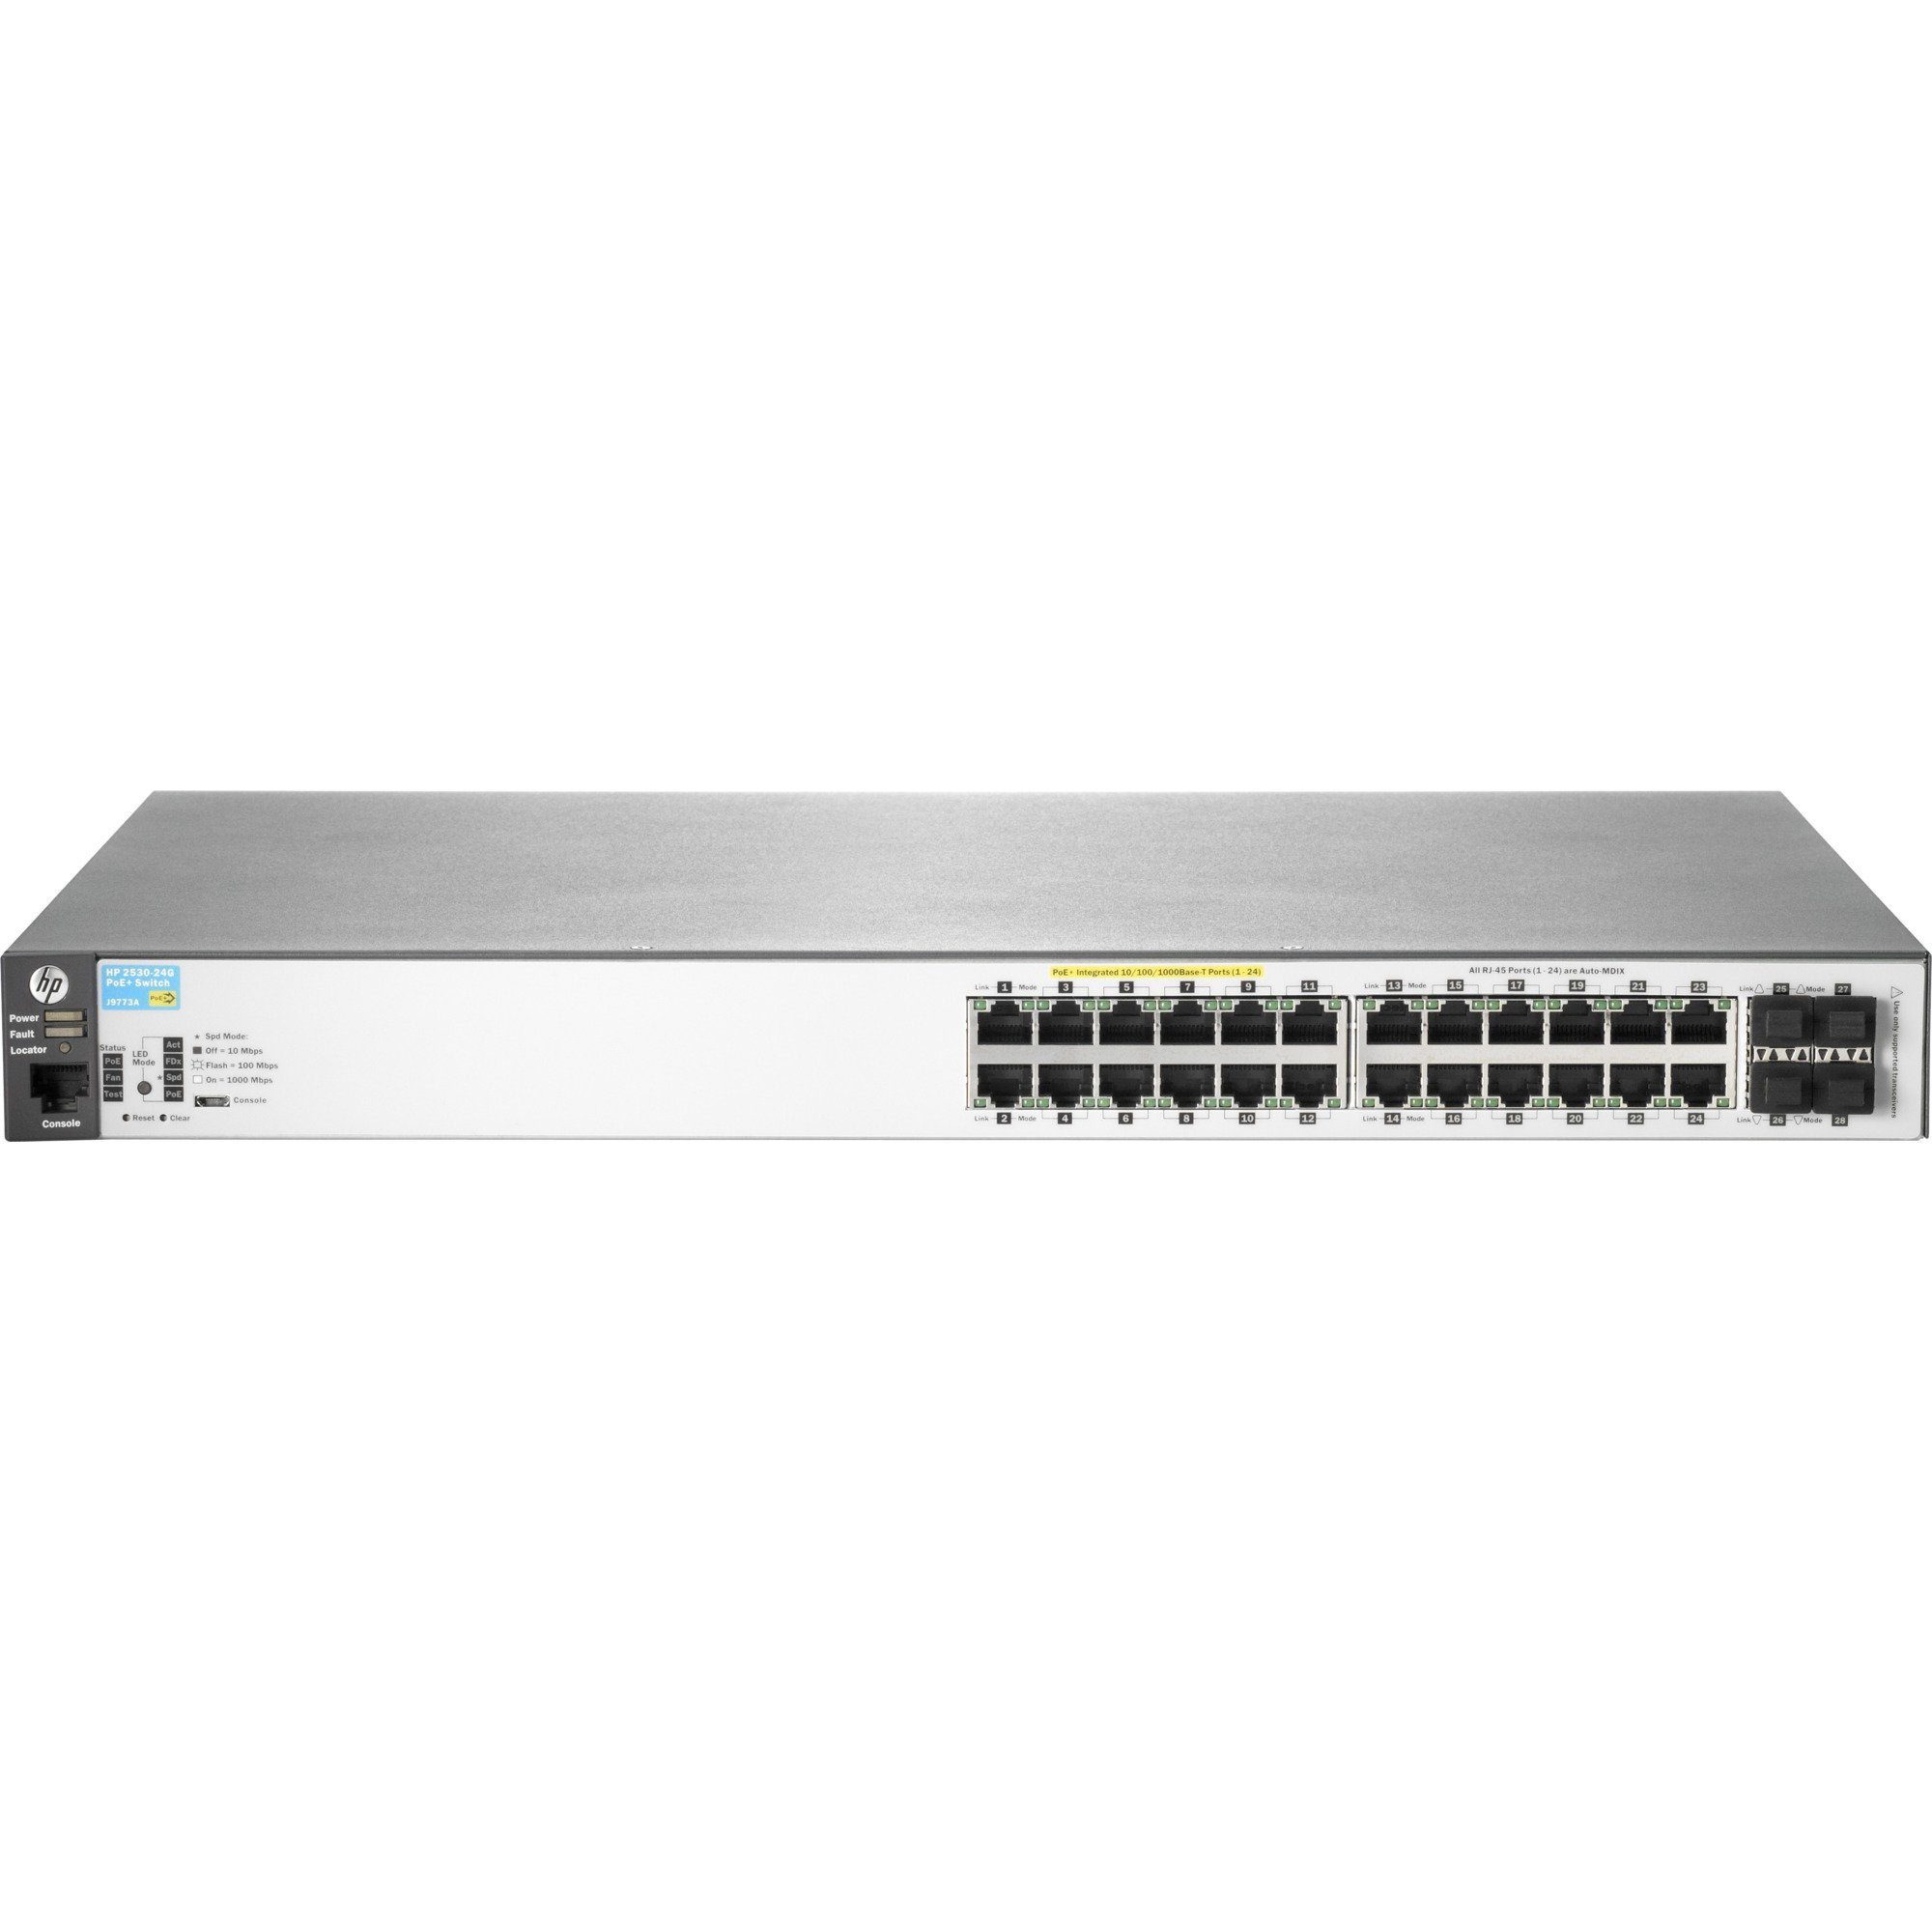 Hewlett-Packard Switch »2530-24G-PoE+«